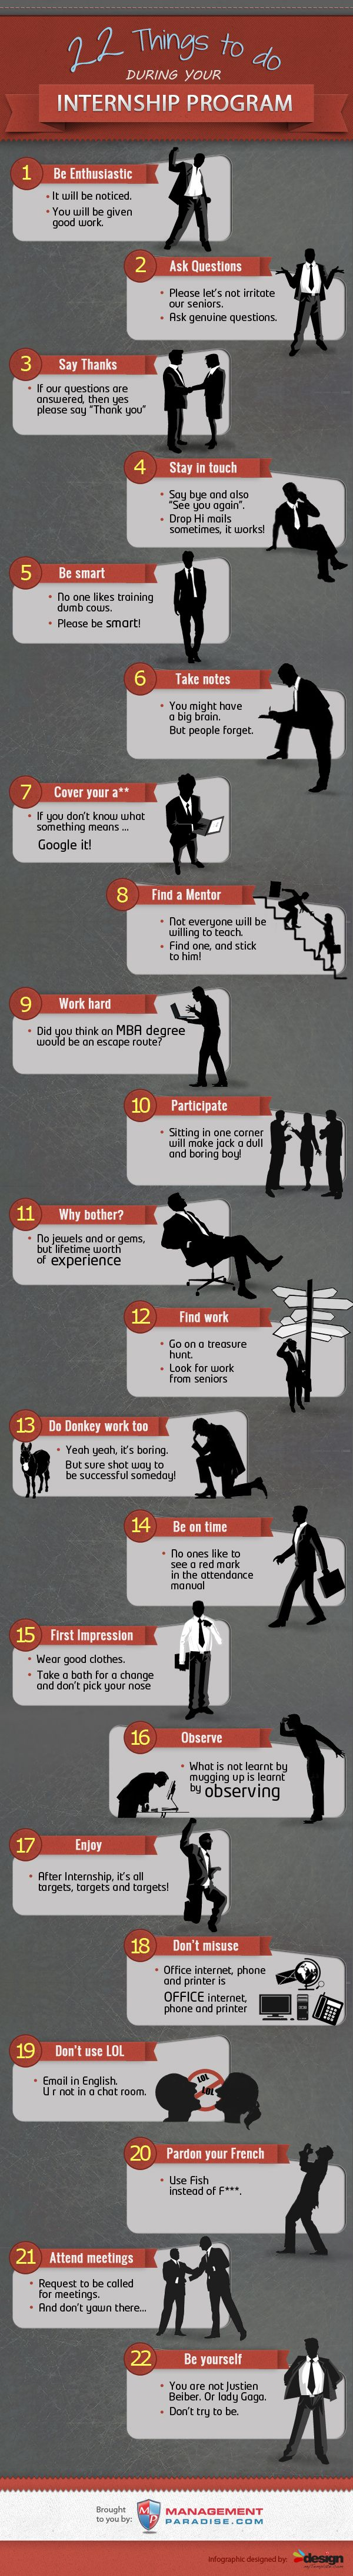 K, this is jumping the gun a wee bit but I thought it was funny and true! (Gotta love it!) 22 short interesting tips for all #interns